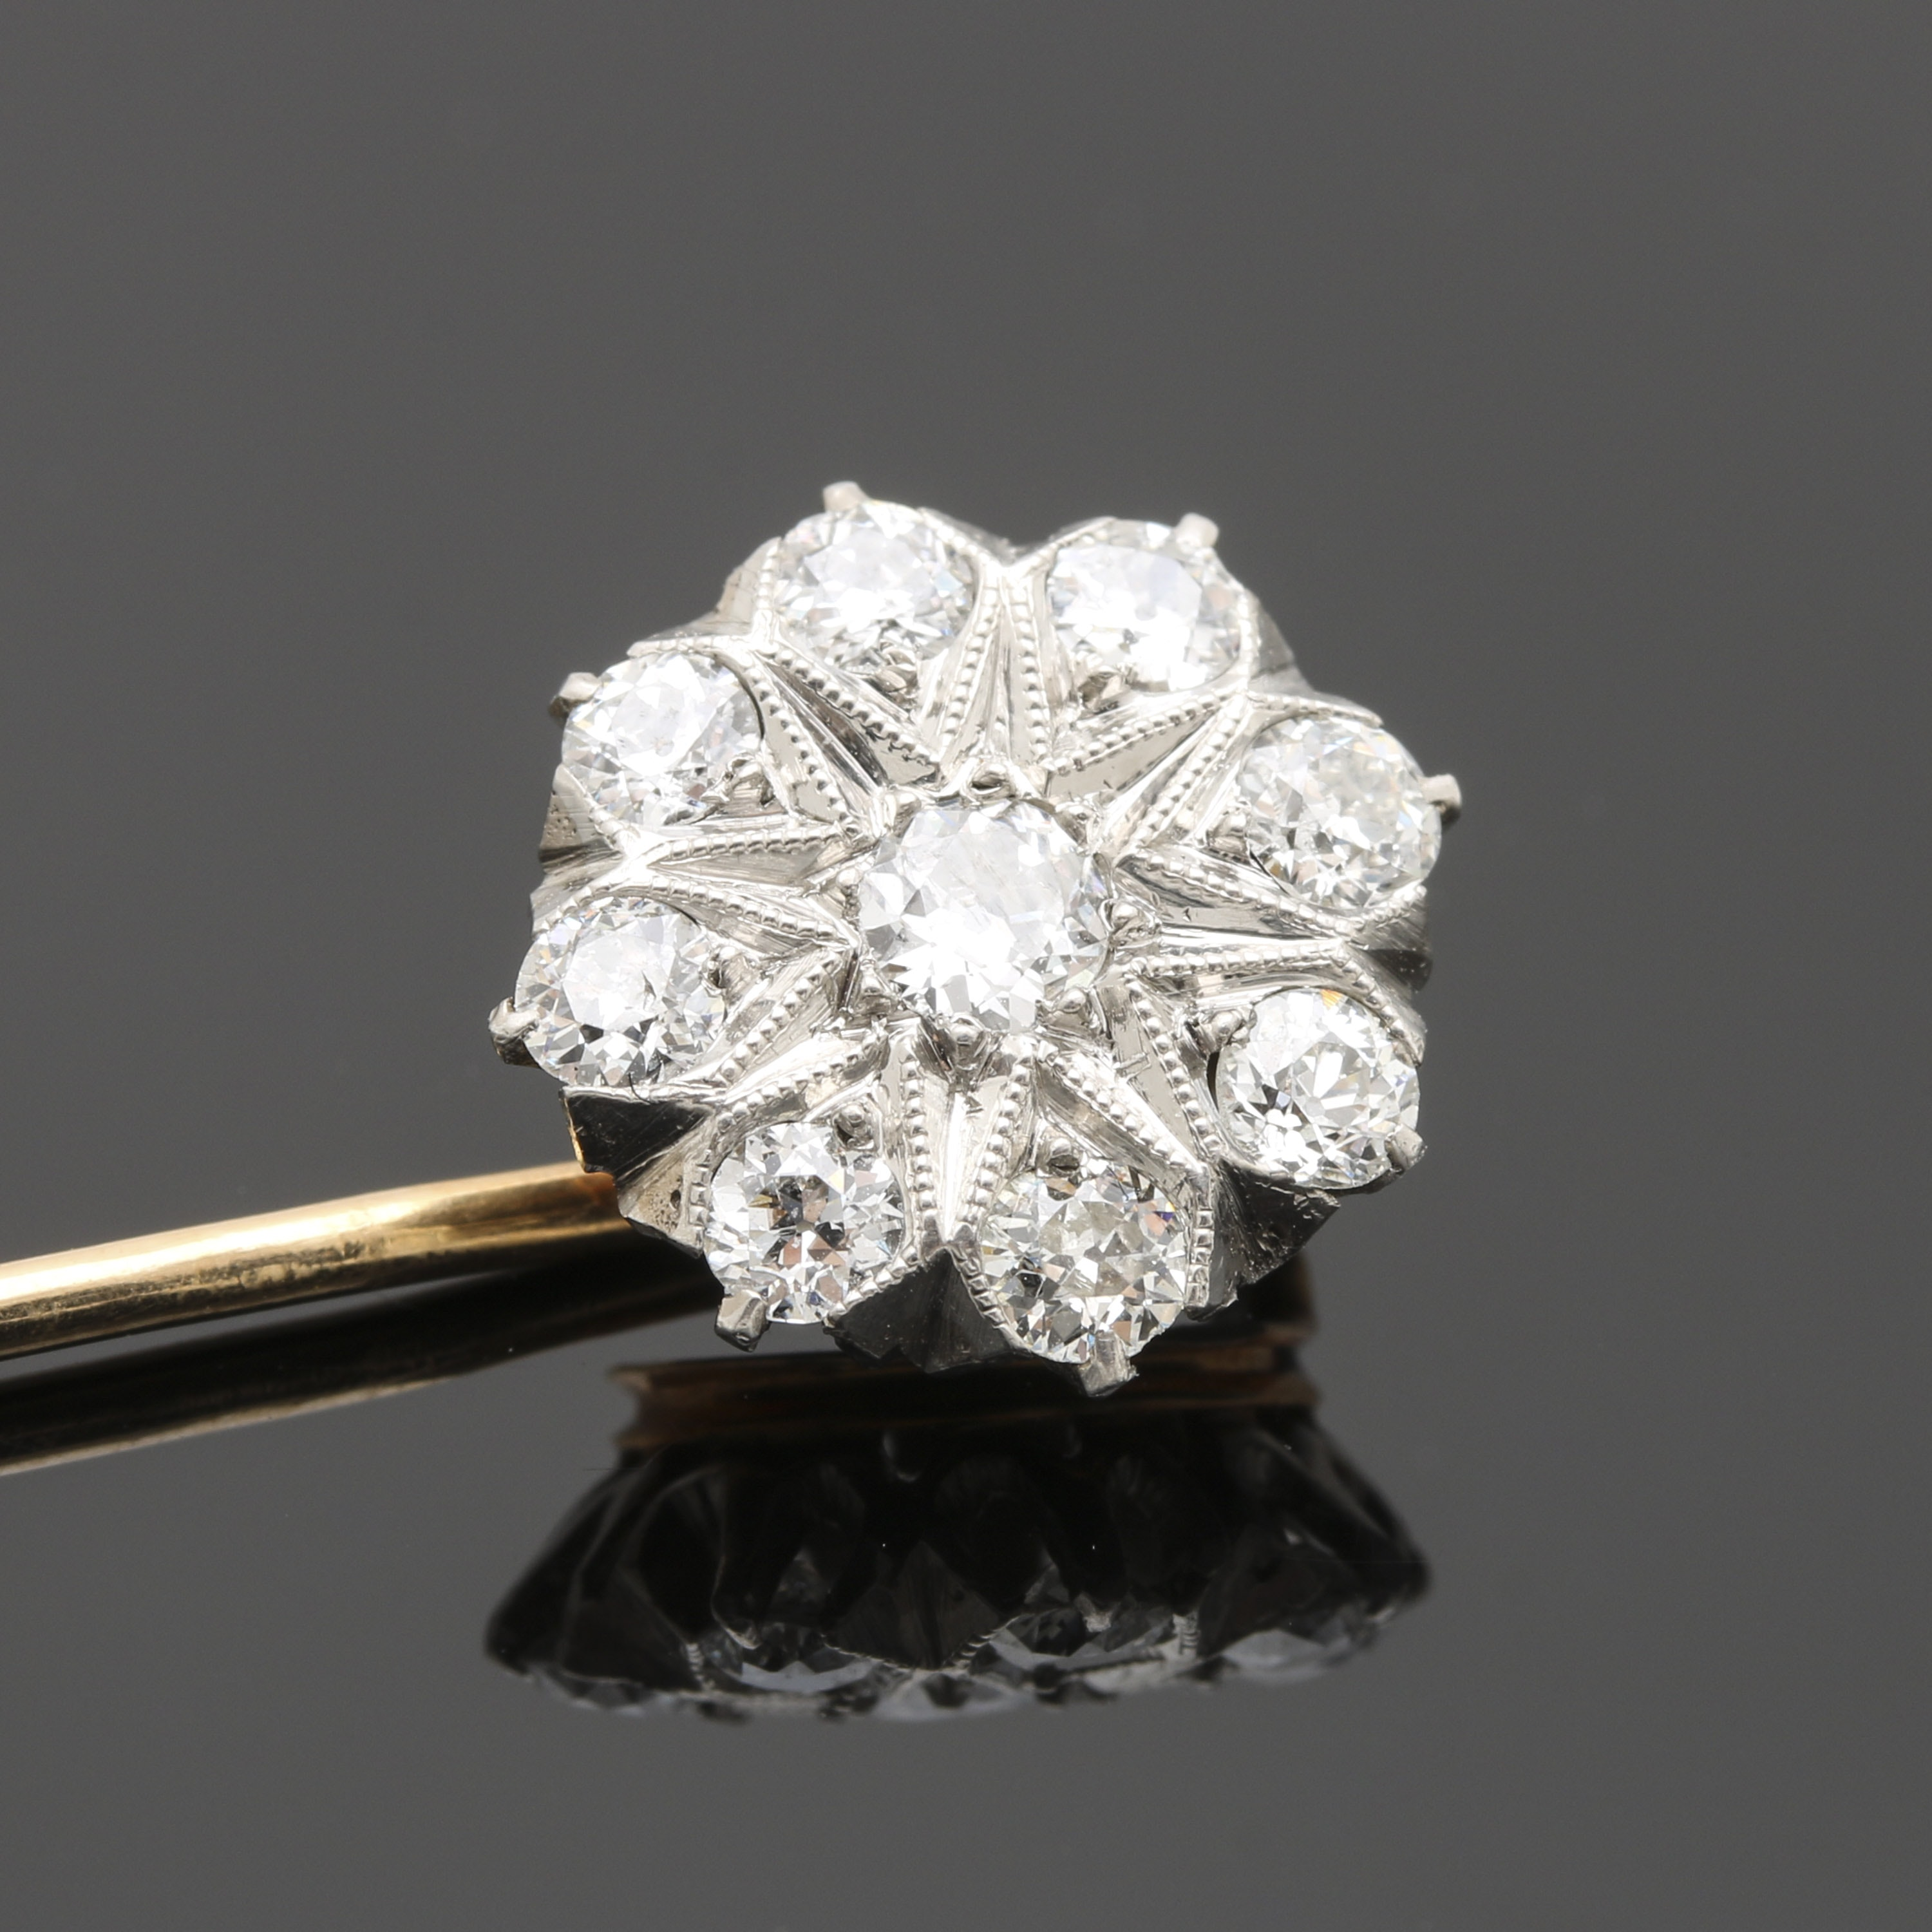 Edwardian 14K Yellow Gold and Platinum Old European Cut Diamond Floral Stick Pin